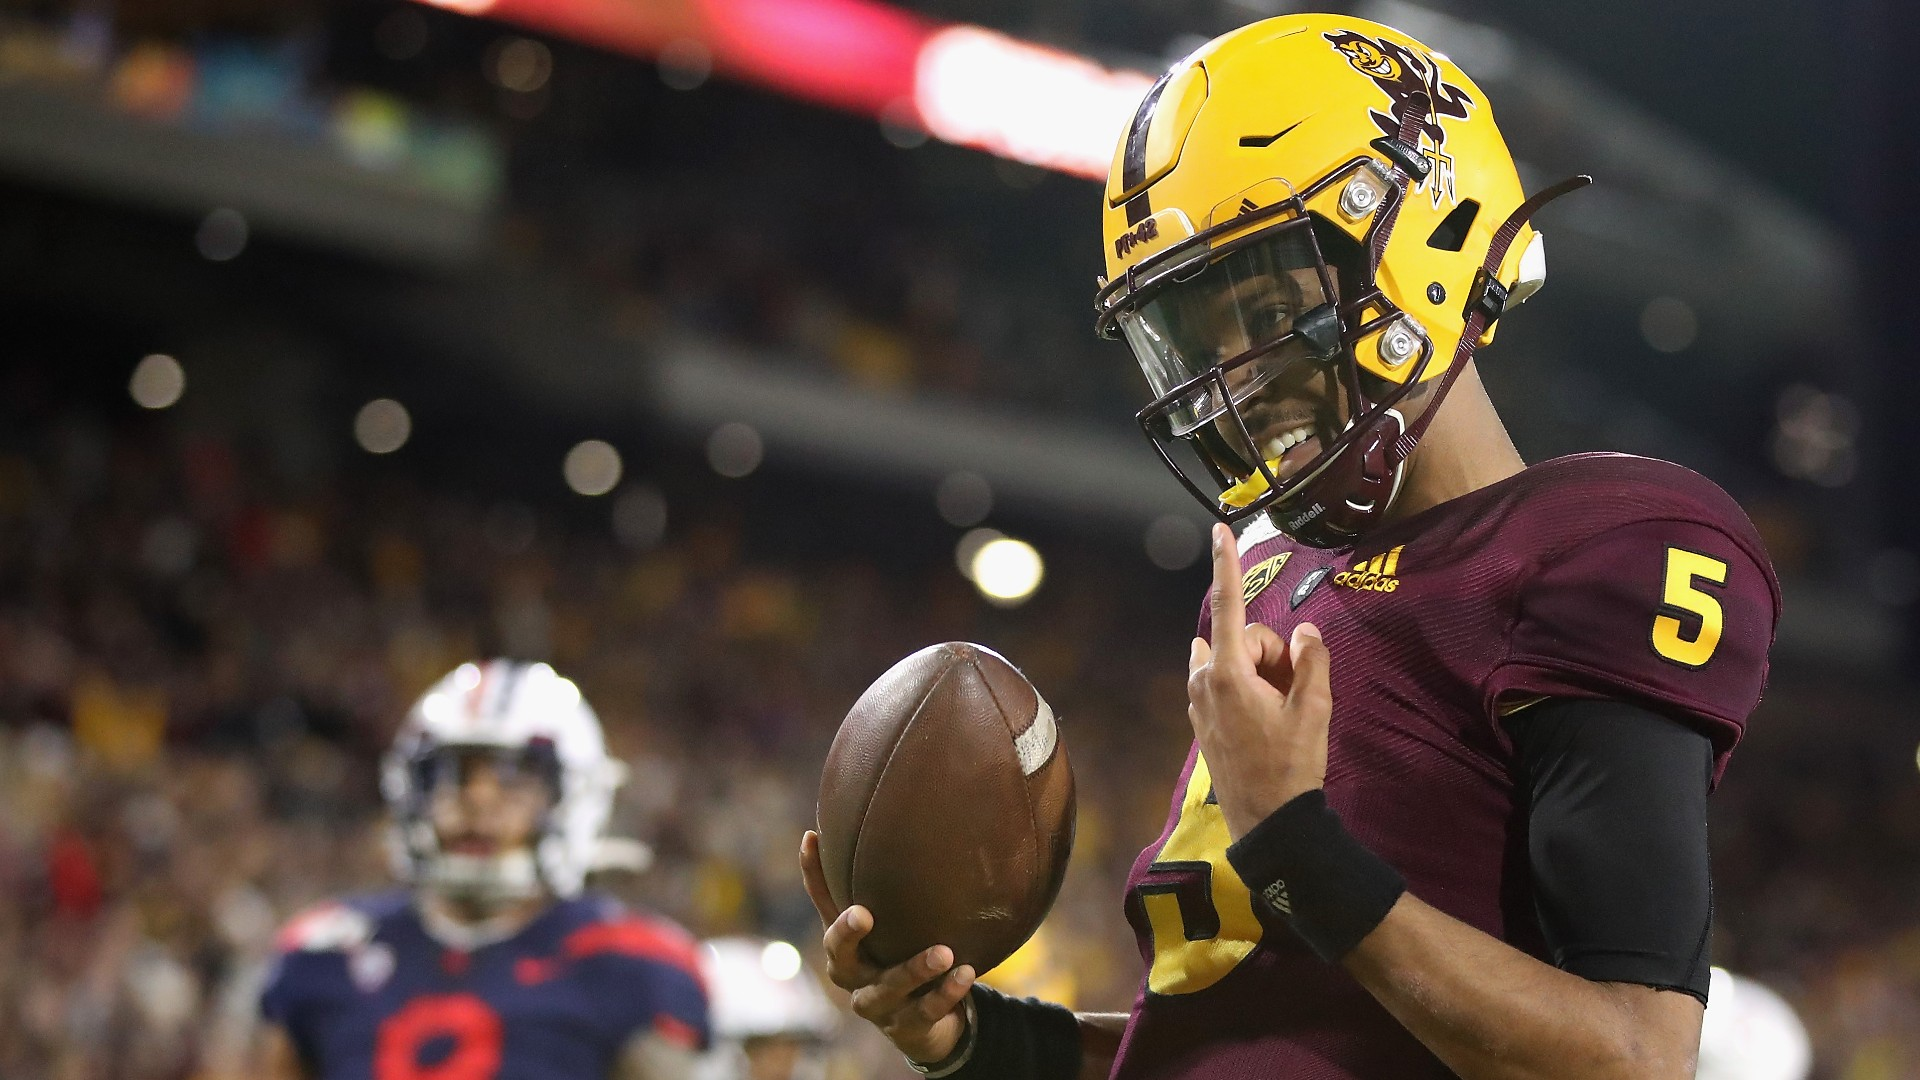 College Football Odds & Pick For California vs. Arizona State: Bet Sun Devils in High-Scoring Pac-12 Battle article feature image